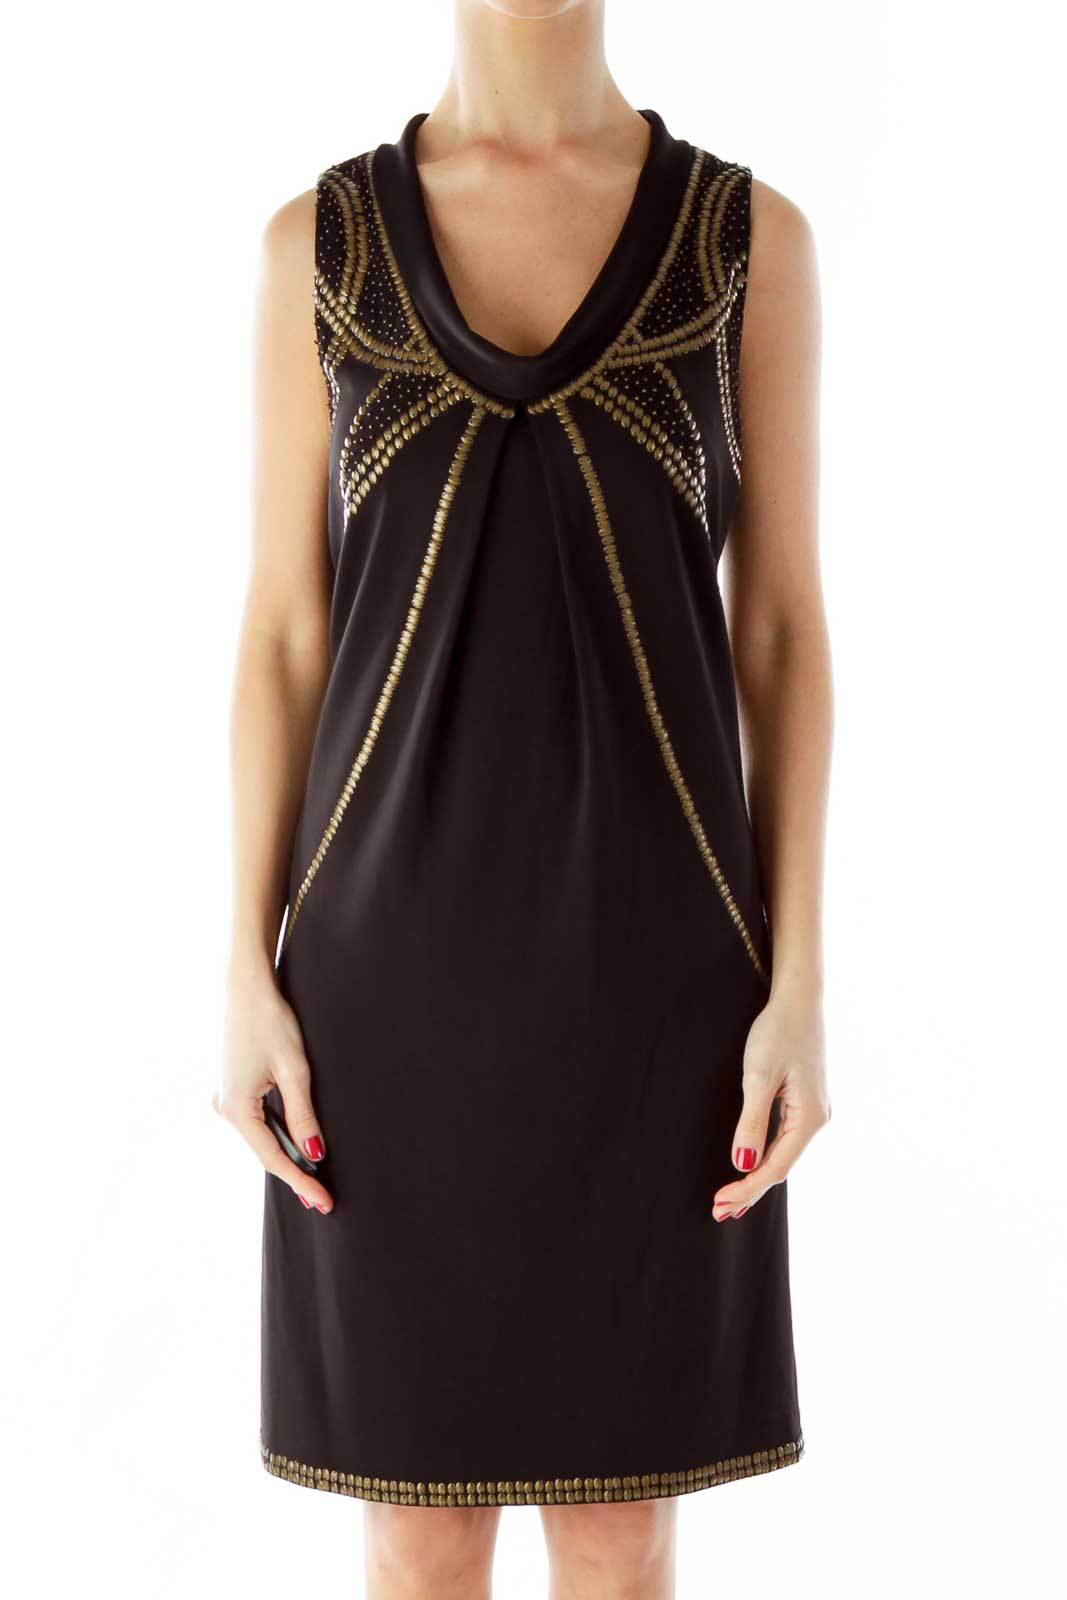 Black Beaded Cocktail Dress Front